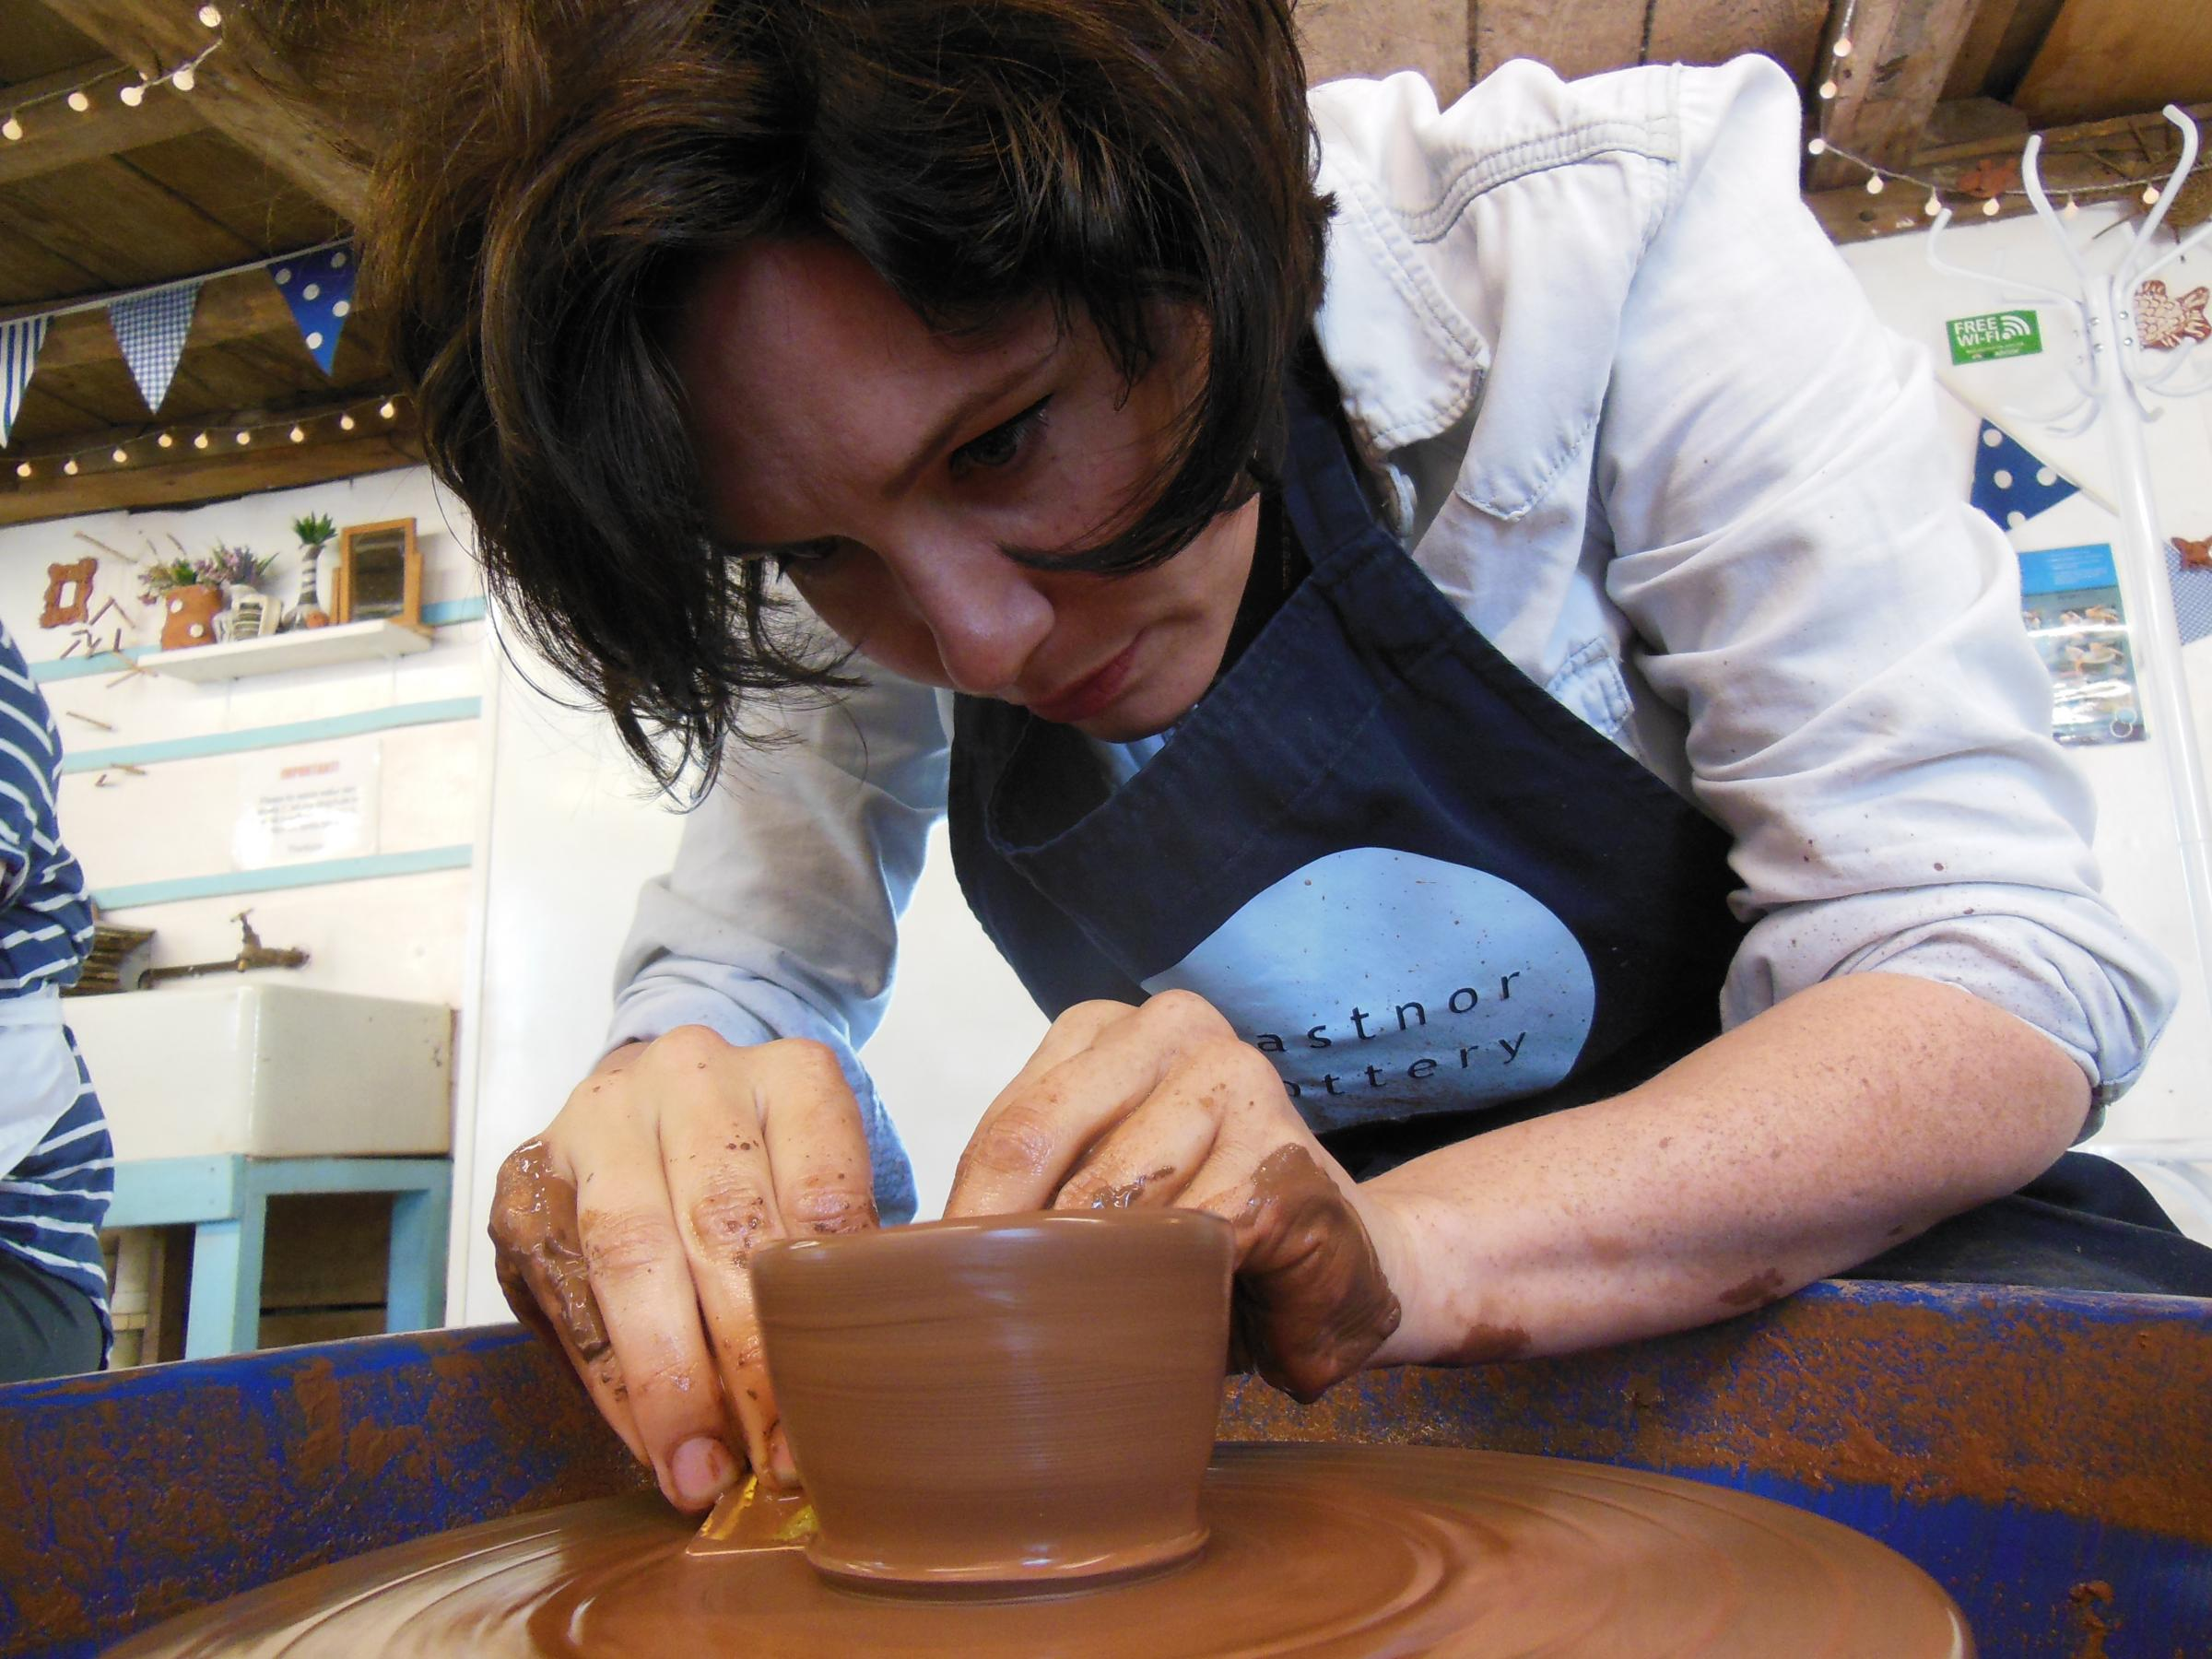 Potter's wheel one day course - Sat 13 Apr